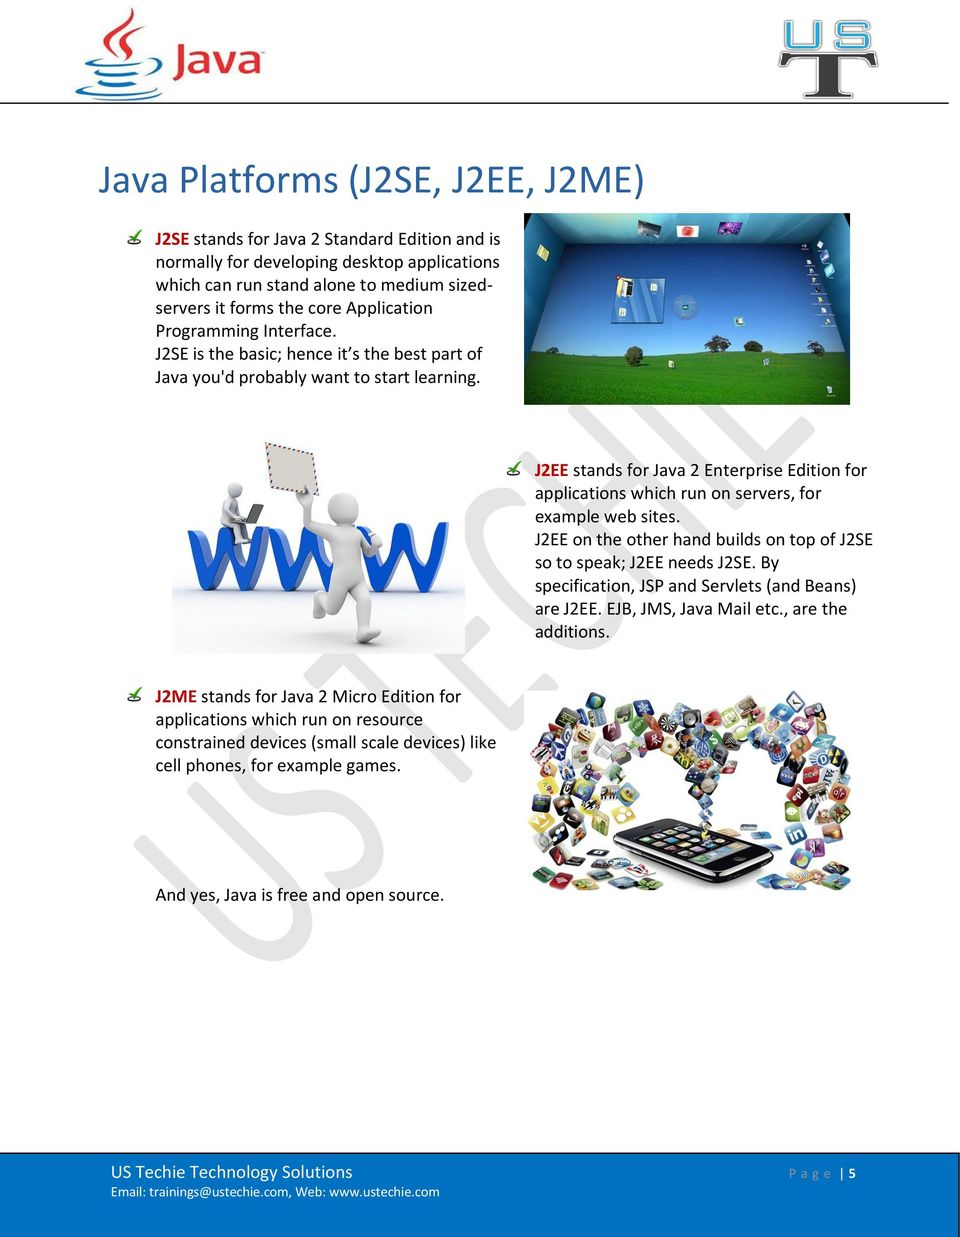 J2EE stands for Java 2 Enterprise Edition for applications which run on servers, for example web sites. J2EE on the other hand builds on top of J2SE so to speak; J2EE needs J2SE.